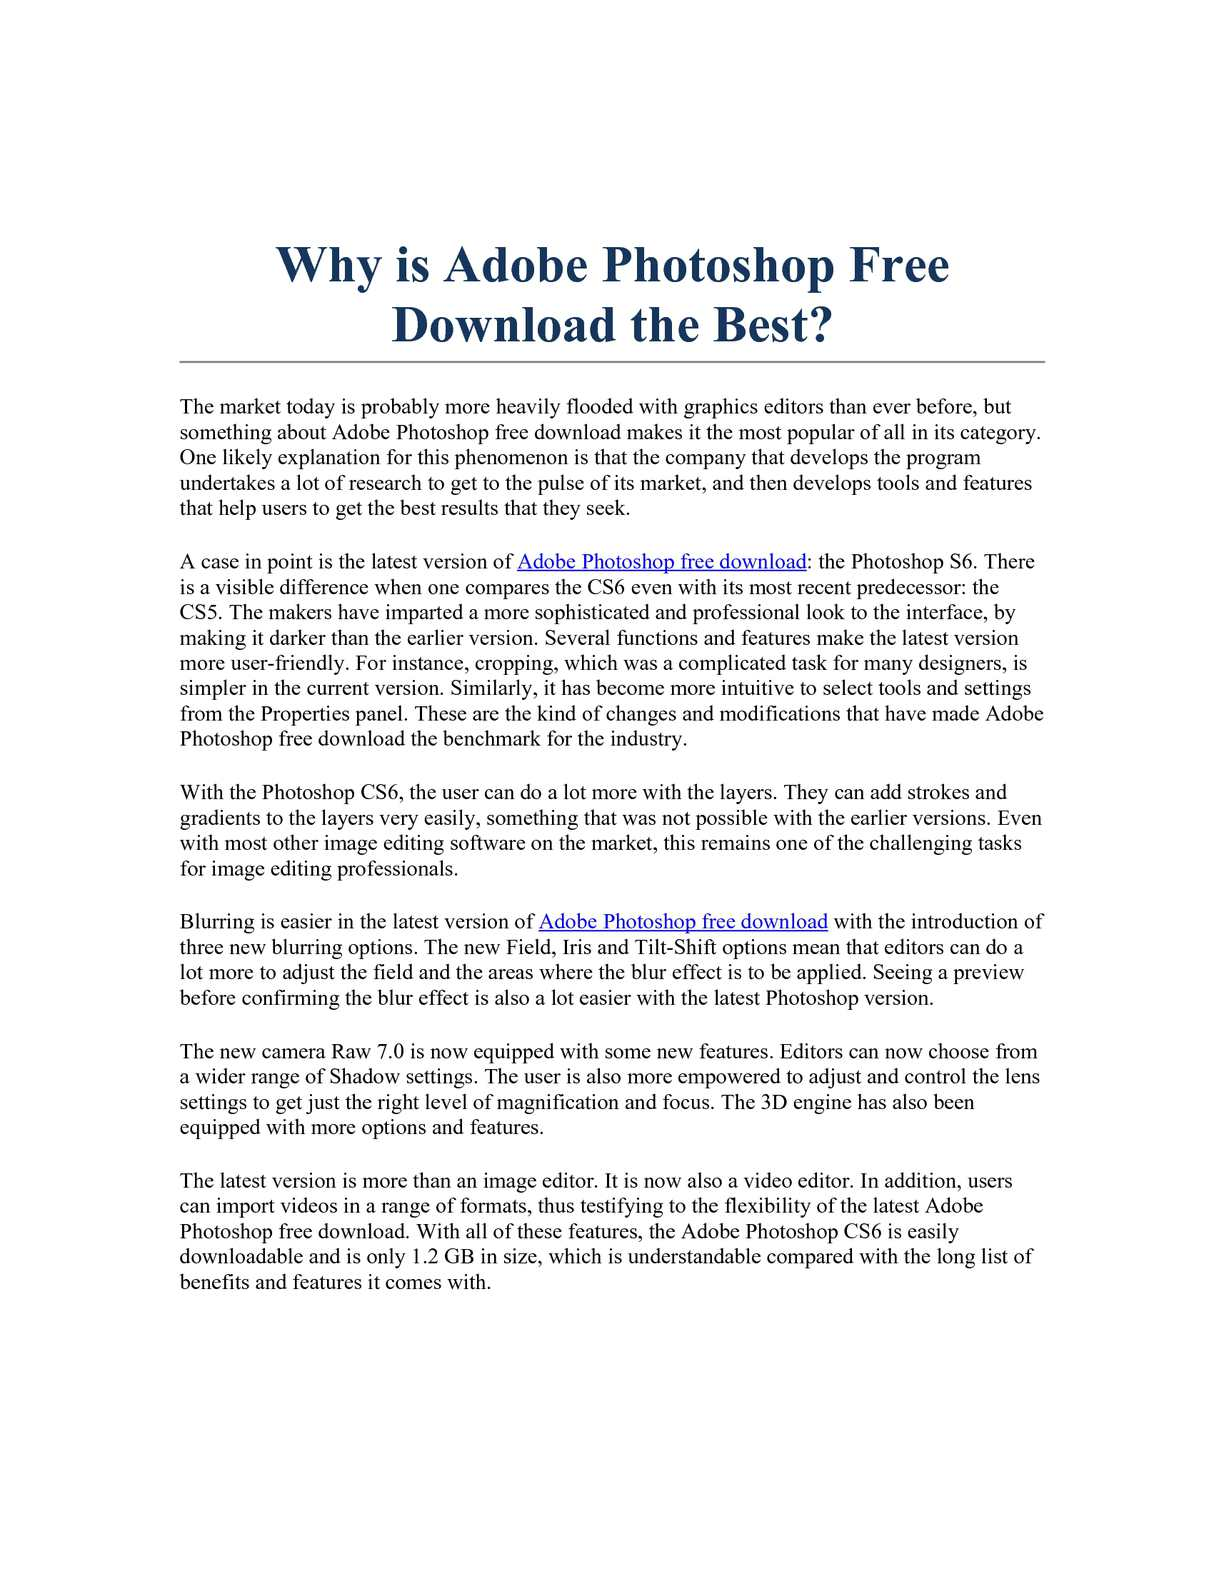 Calaméo - Why is Adobe Photoshop Free Download the Best?